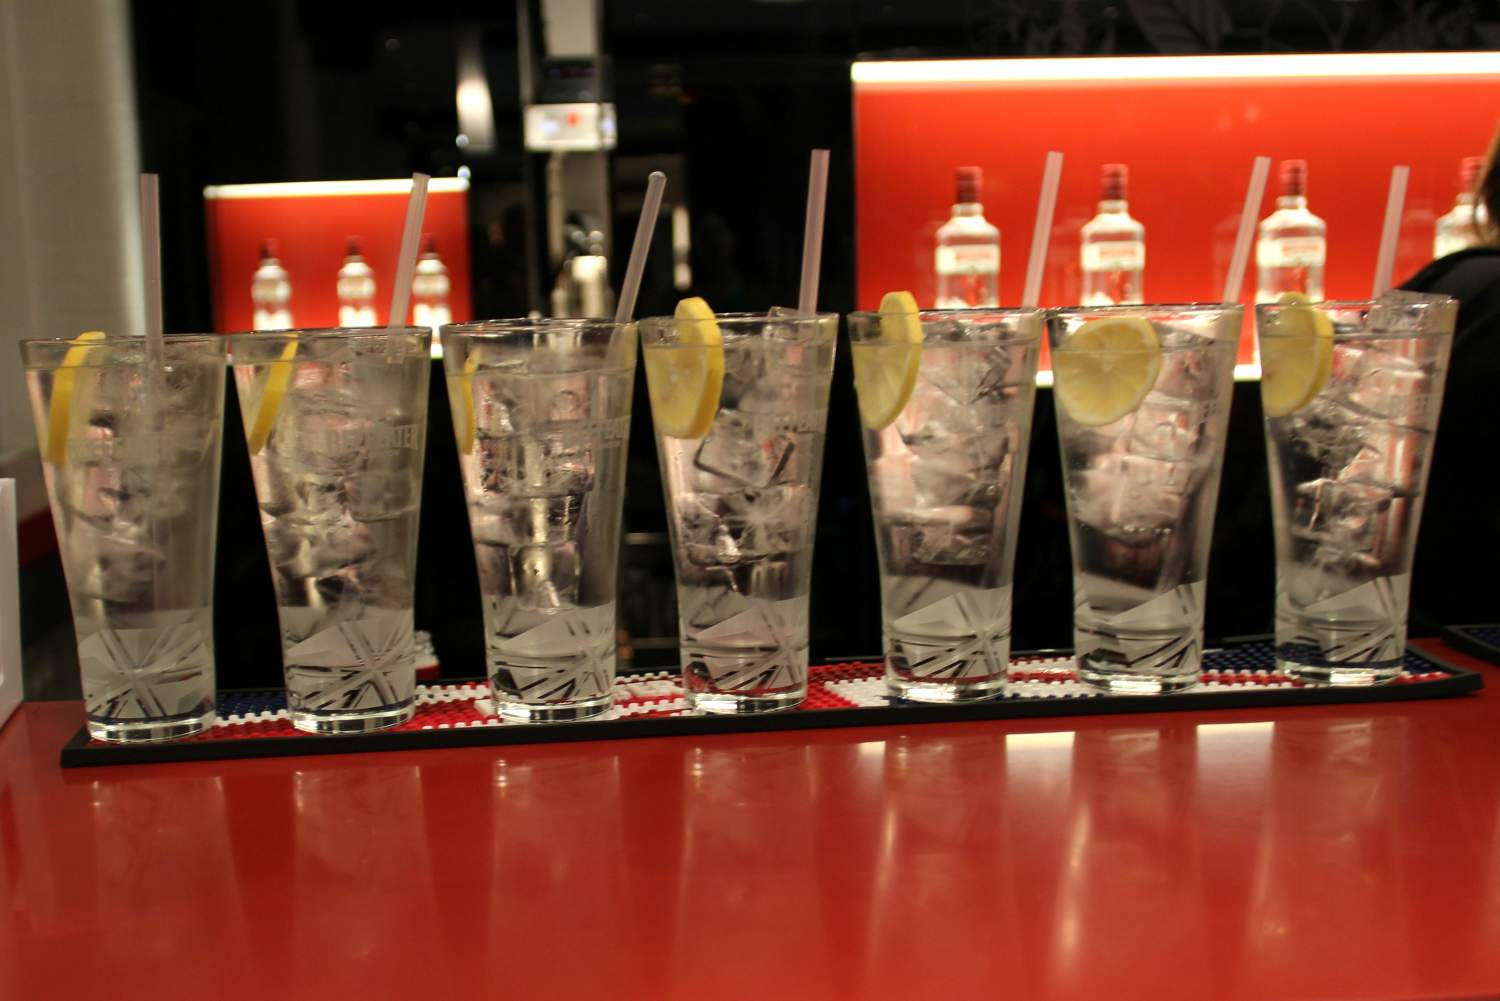 Beefeater distillery gin tasting, London